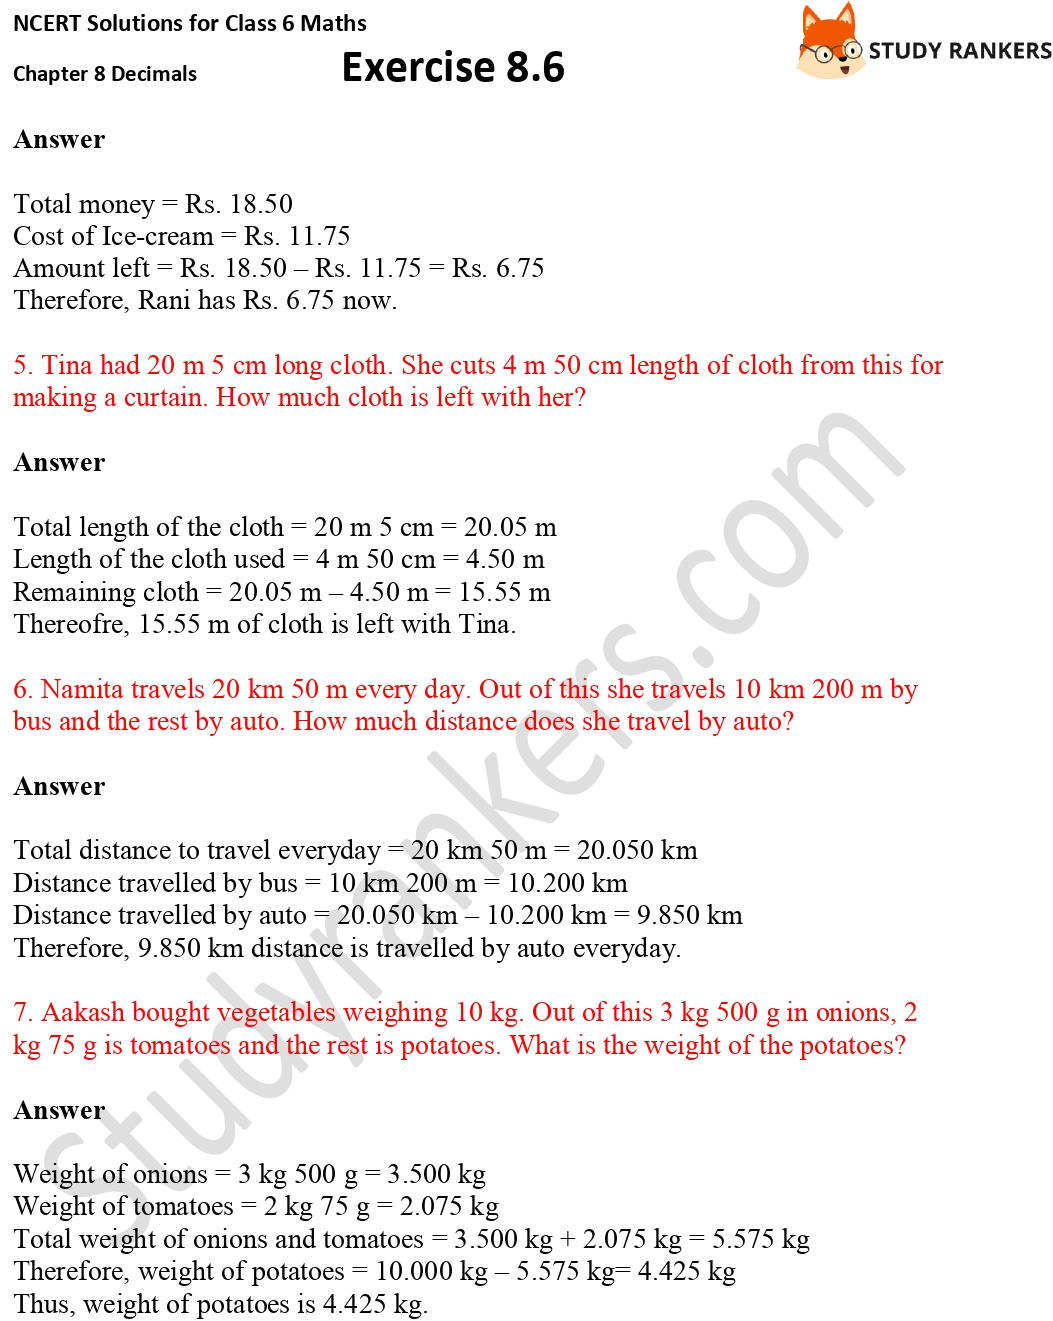 NCERT Solutions for Class 6 Maths Chapter 8 Decimals Exercise 8.6 Part 2